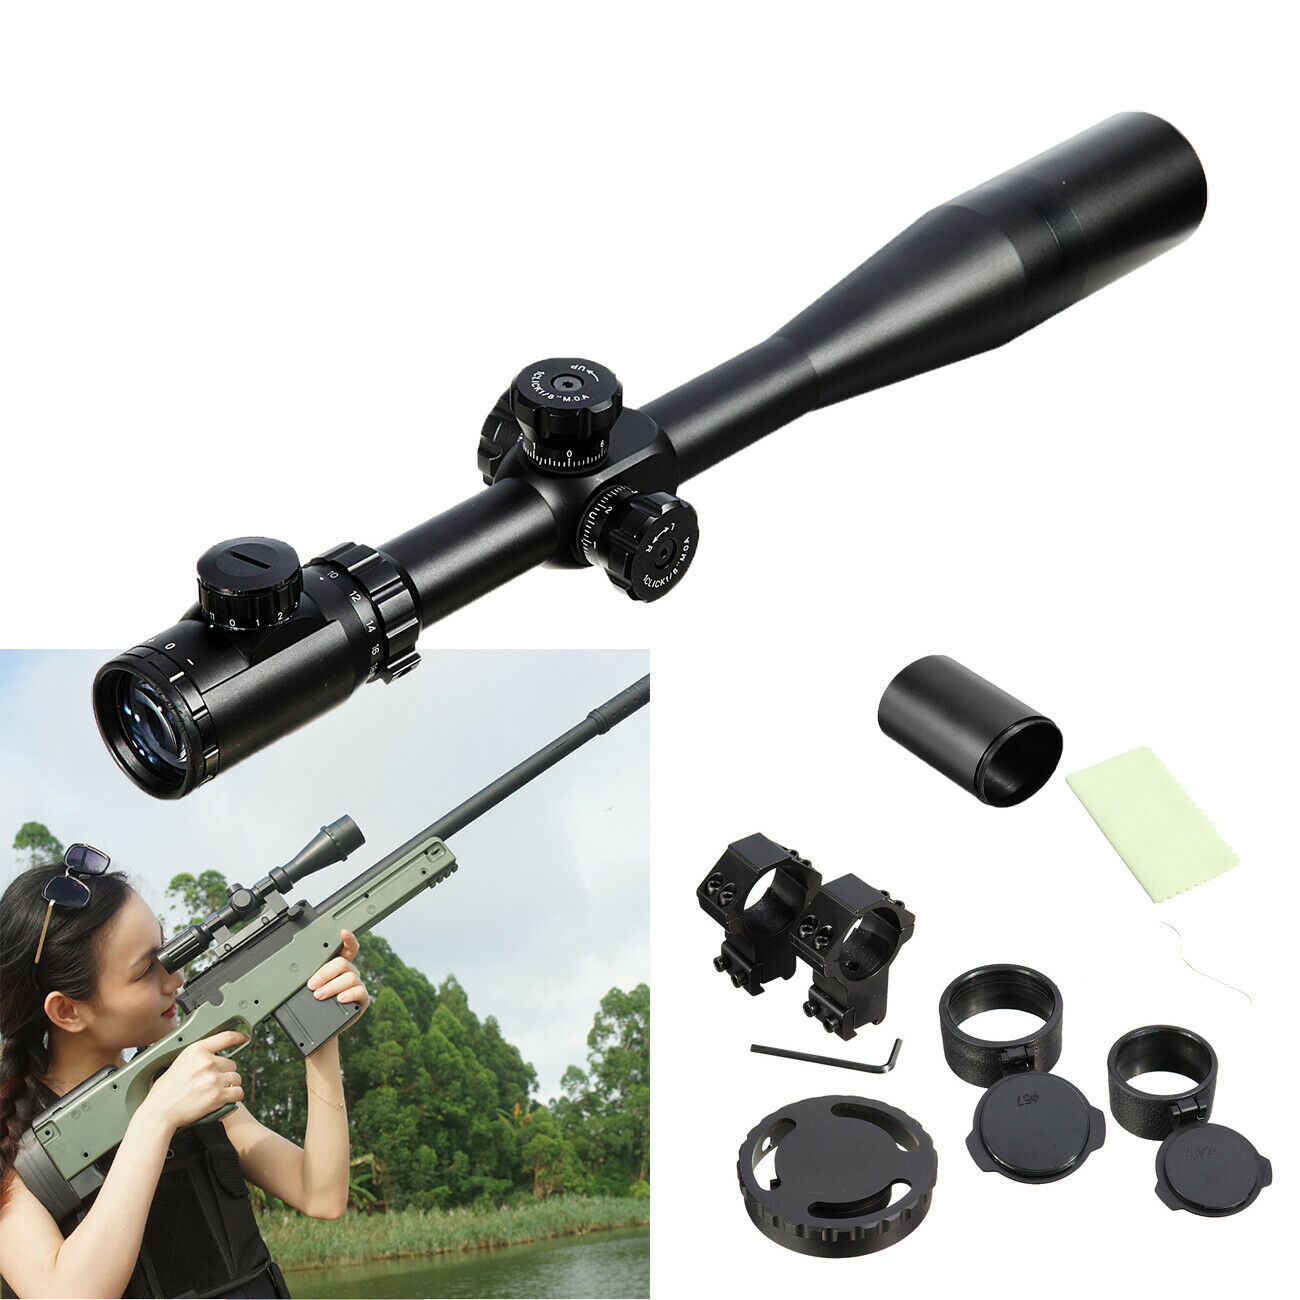 ZOS10-40x50 SFE IR SWAT Extreme Tactical Reticle Telescope Rifle Scope